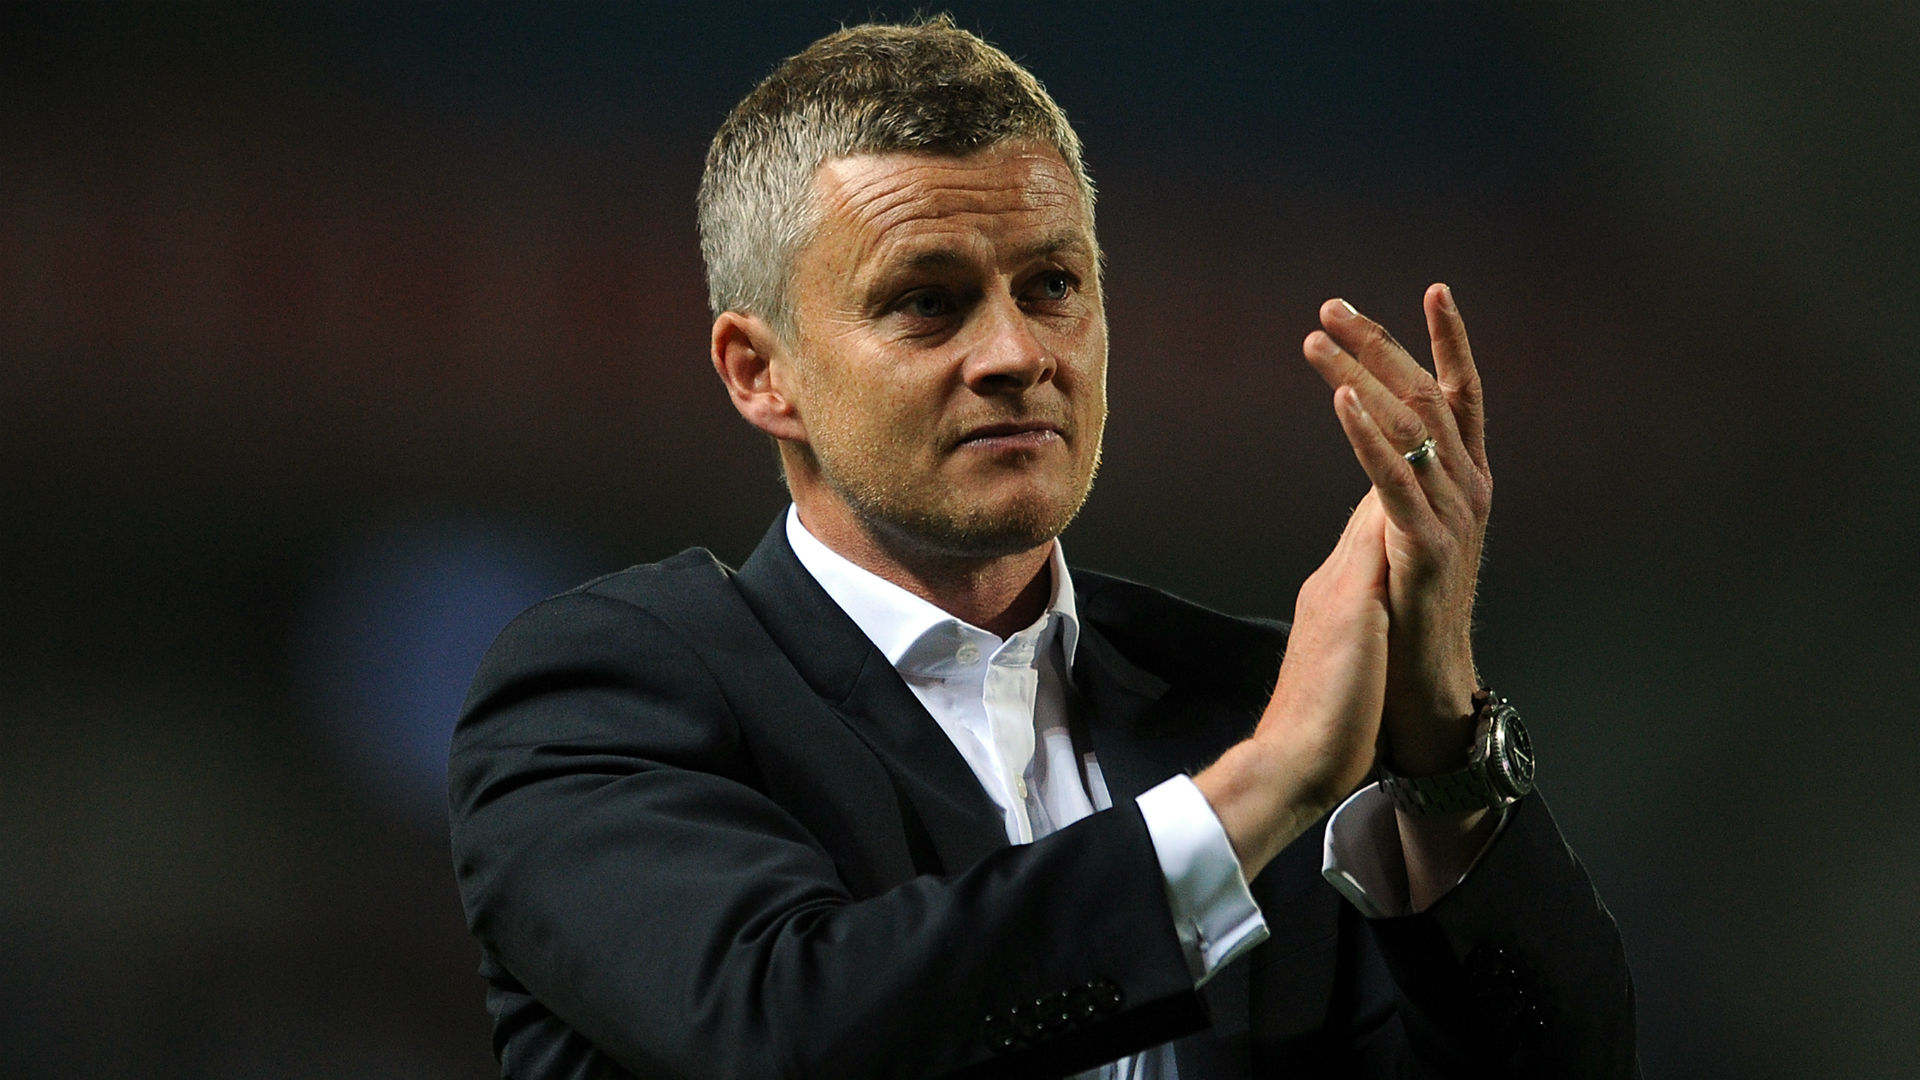 Solskjaer to United: Returning heroes - the hits and misses